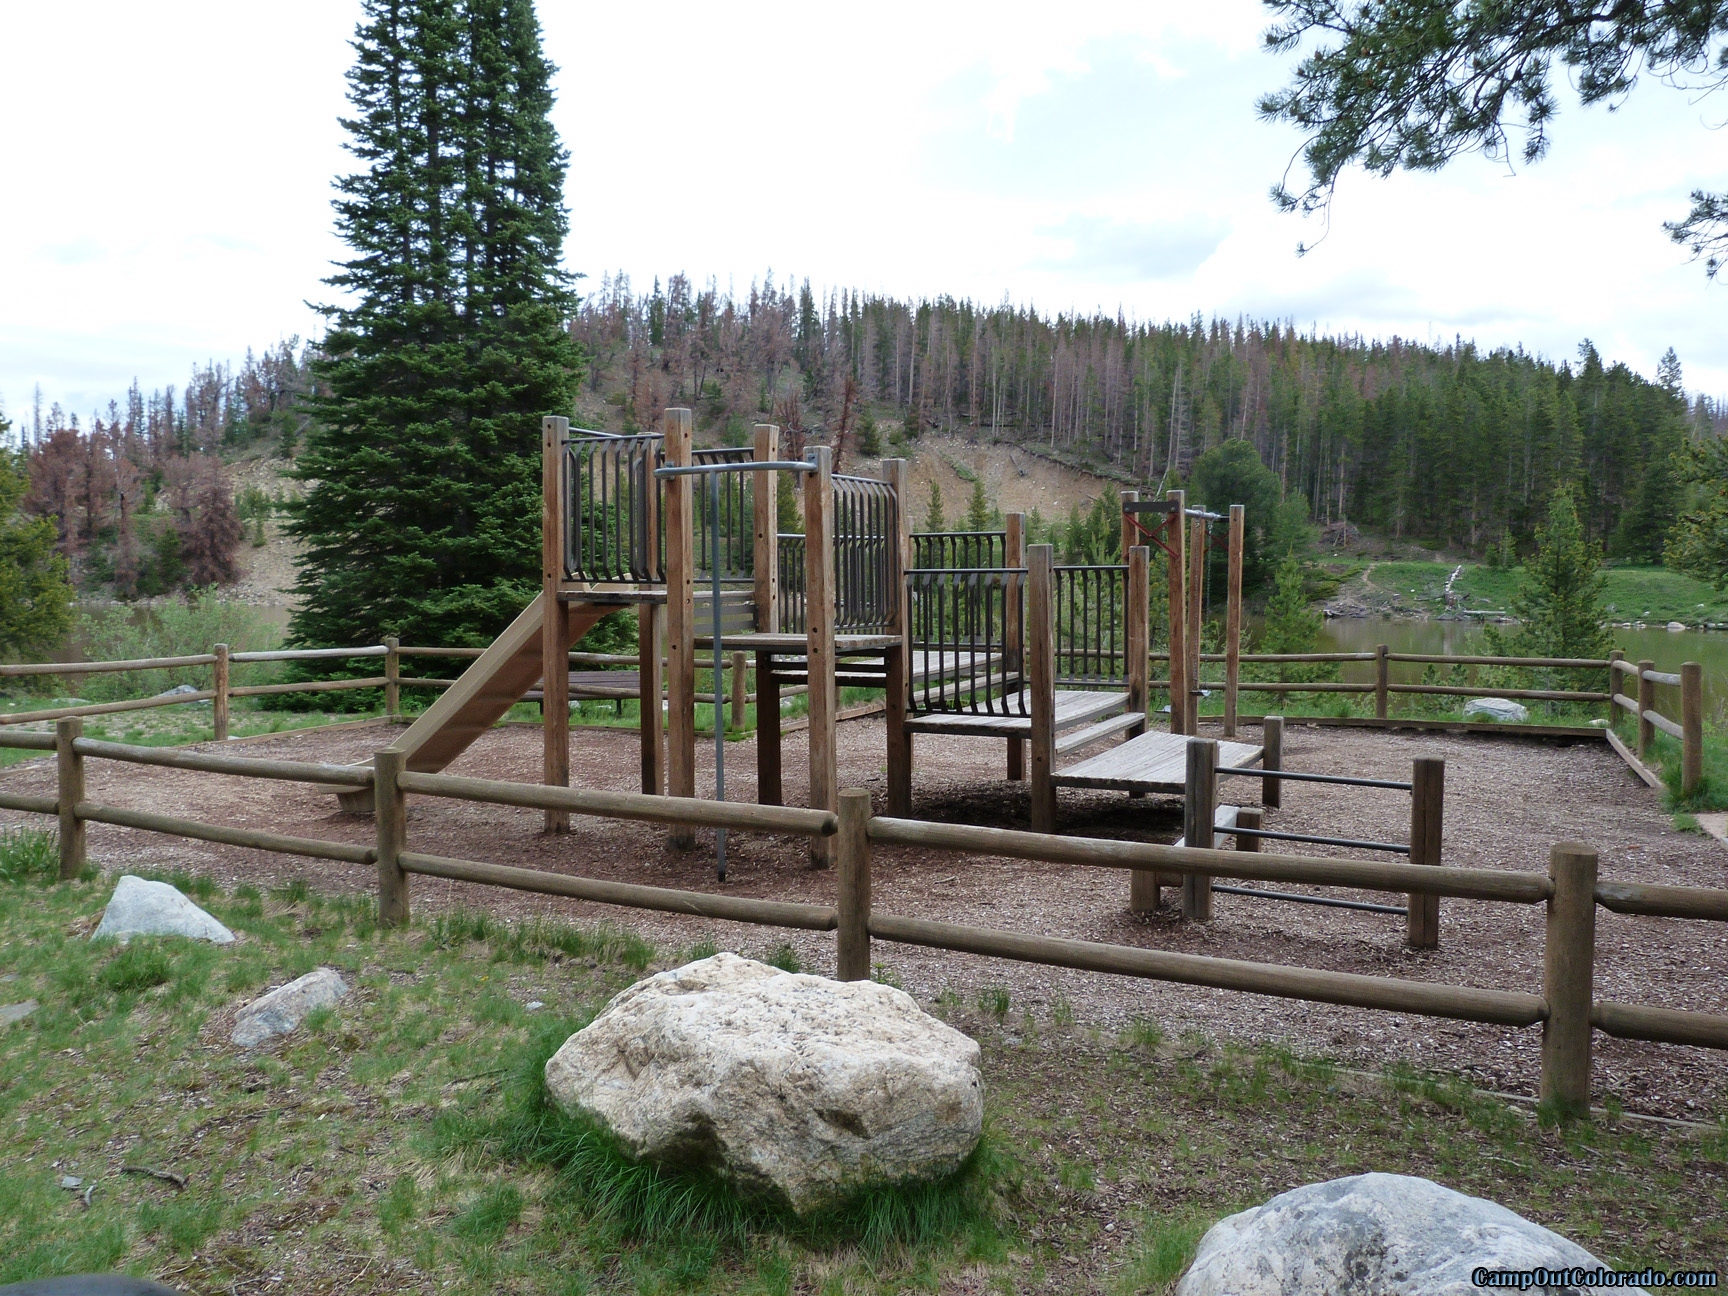 camp-out-colorado-chambers-lake-campground-playground